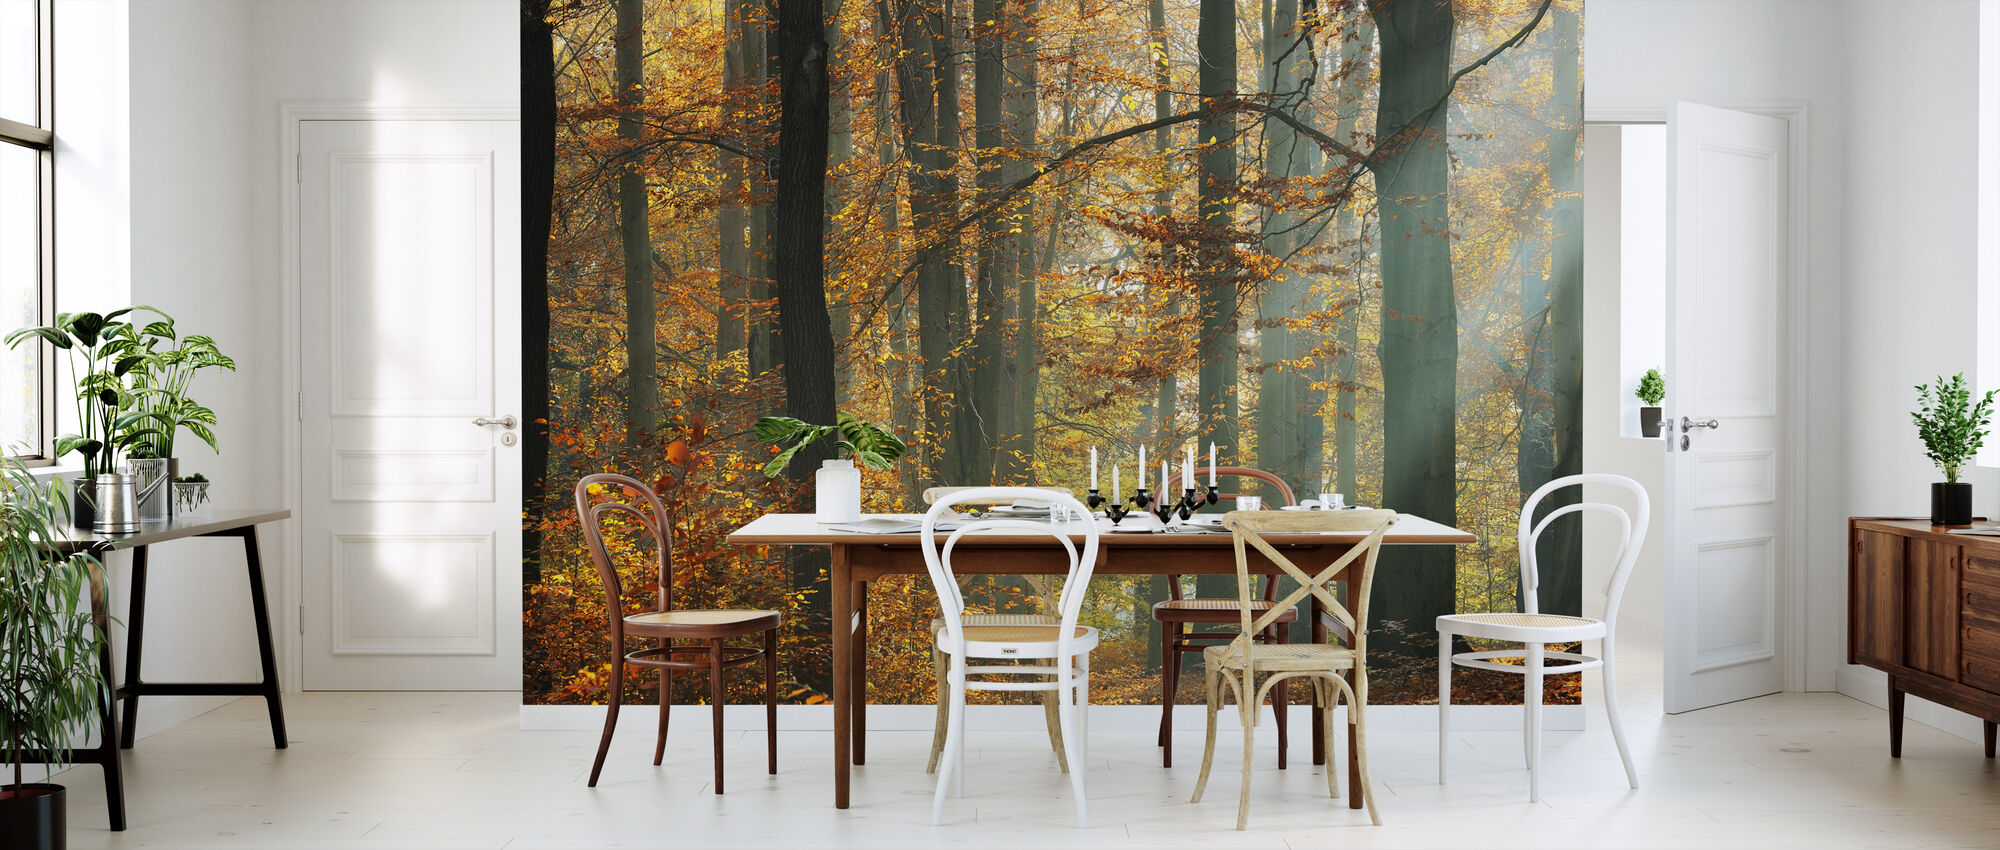 Sunbeams in a Colorful Autumnal Forest - Wallpaper - Kitchen